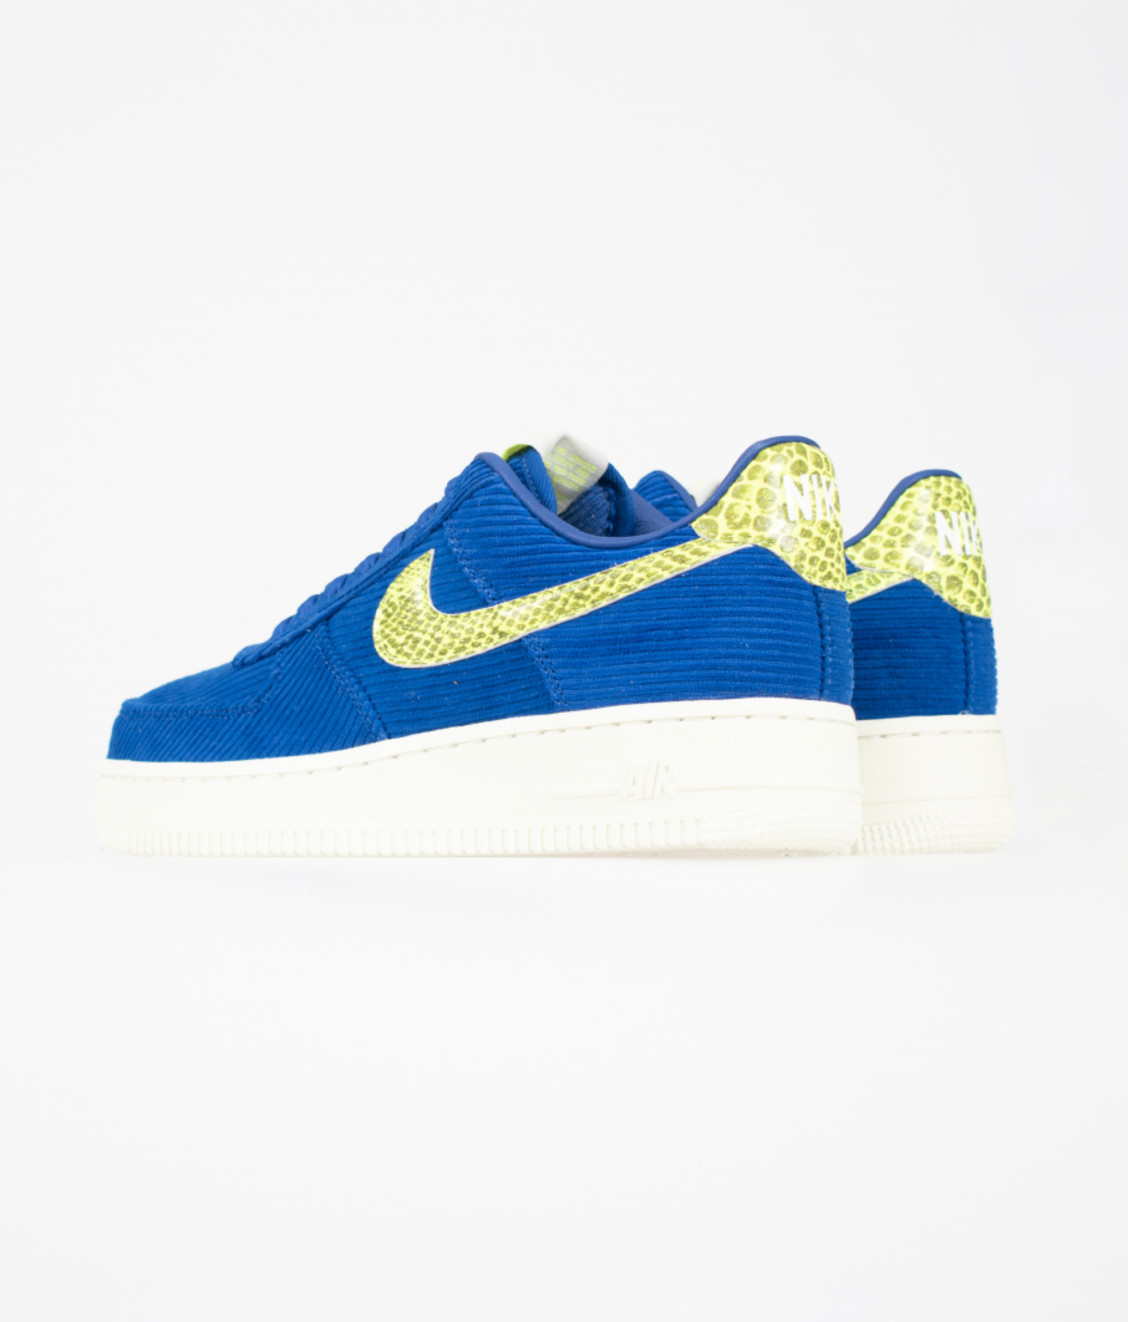 Nike Nike X Olivia Kim Air Force 1 '07 Hyper Blue Corduroy